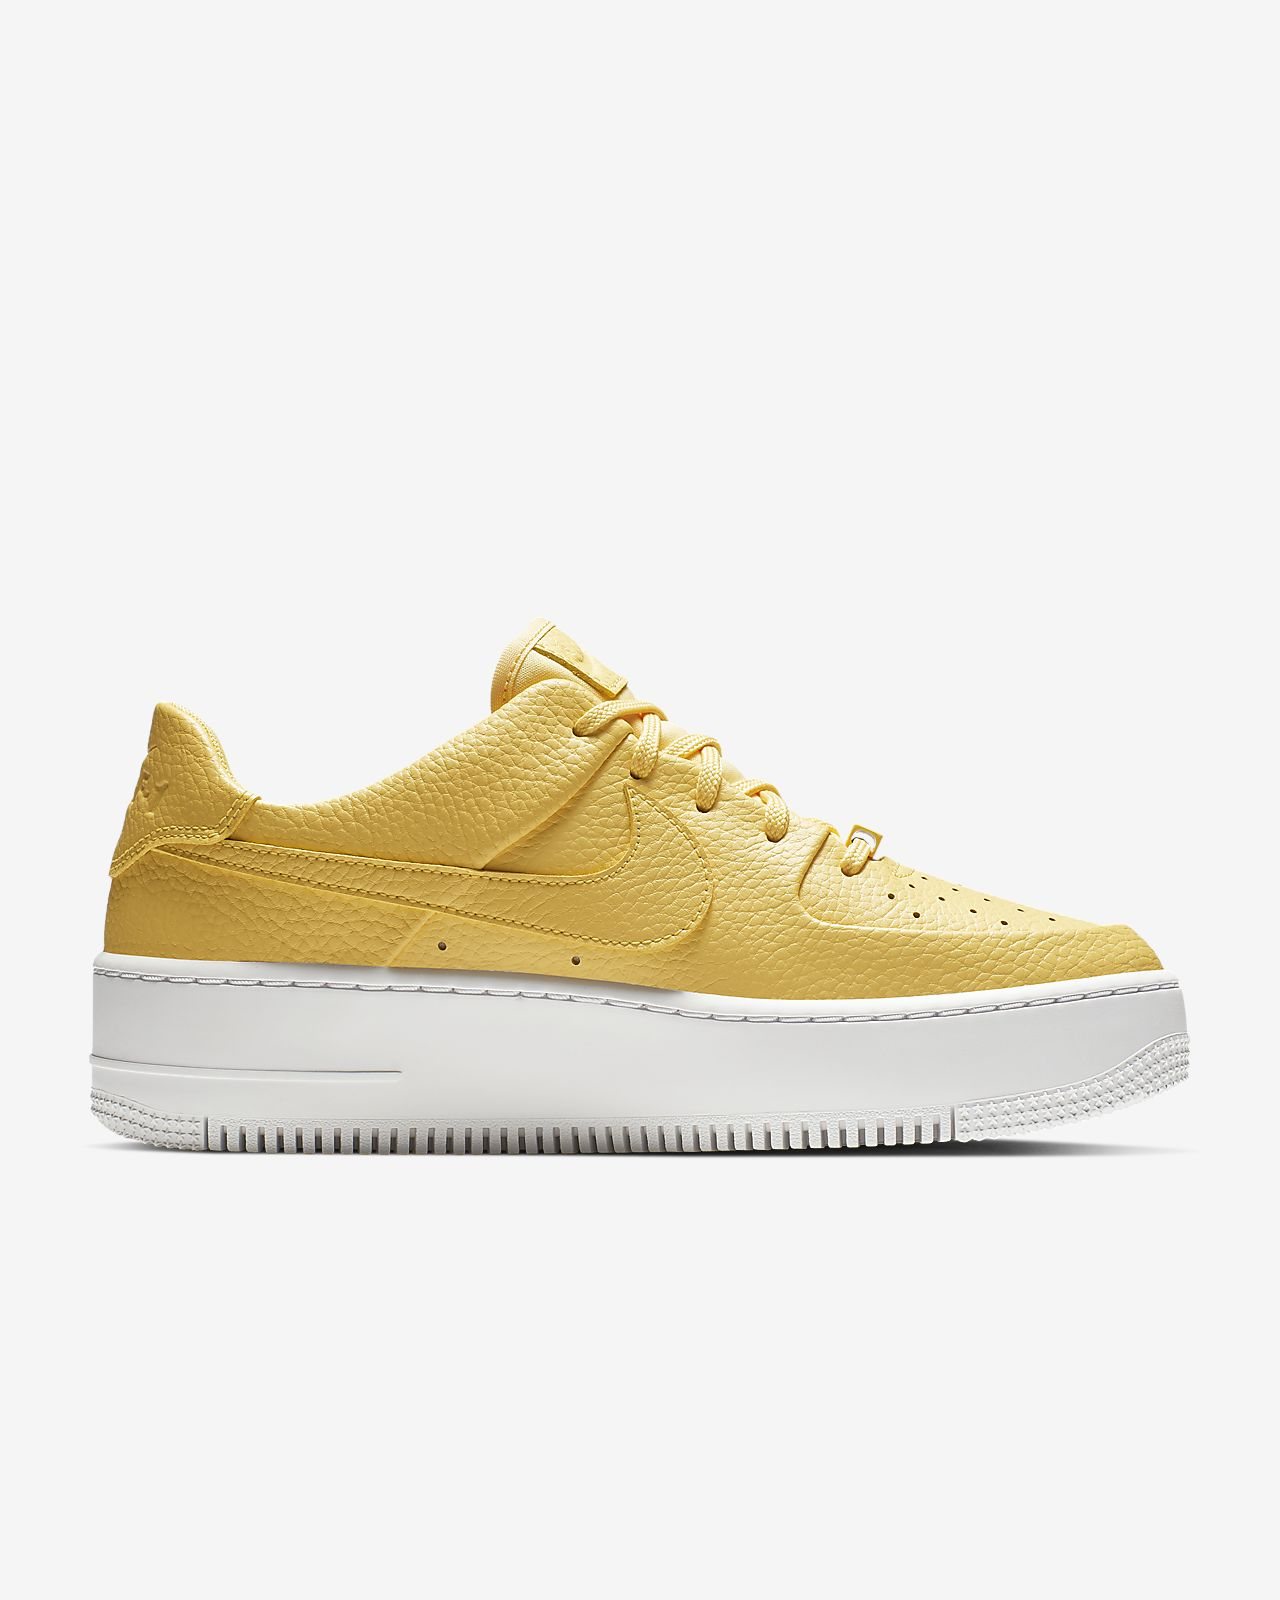 Wholesale Lots Honest Nike Air Force 1 High Tops Handsome Appearance